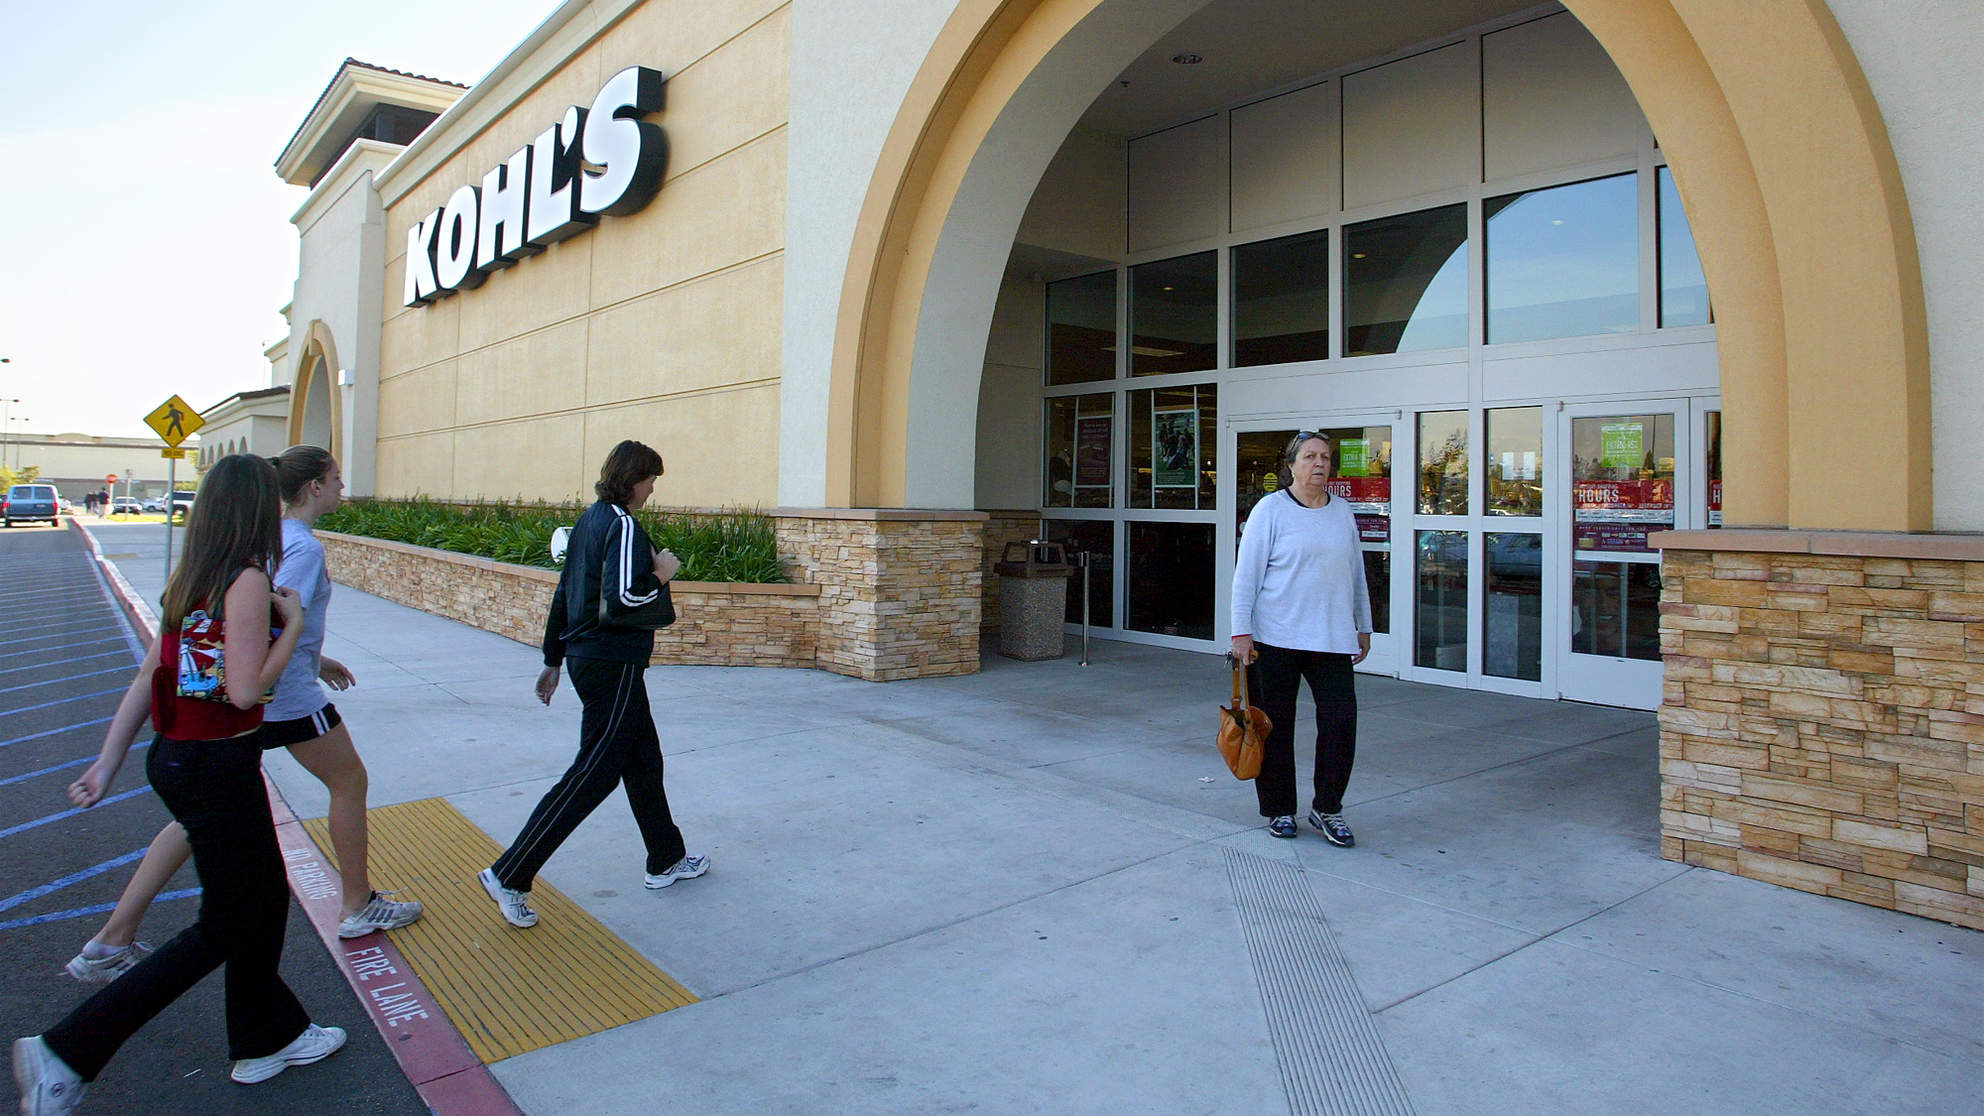 Kohl's store in Glendora. Mid–level department stores are in a crunch as discounters continue pullin